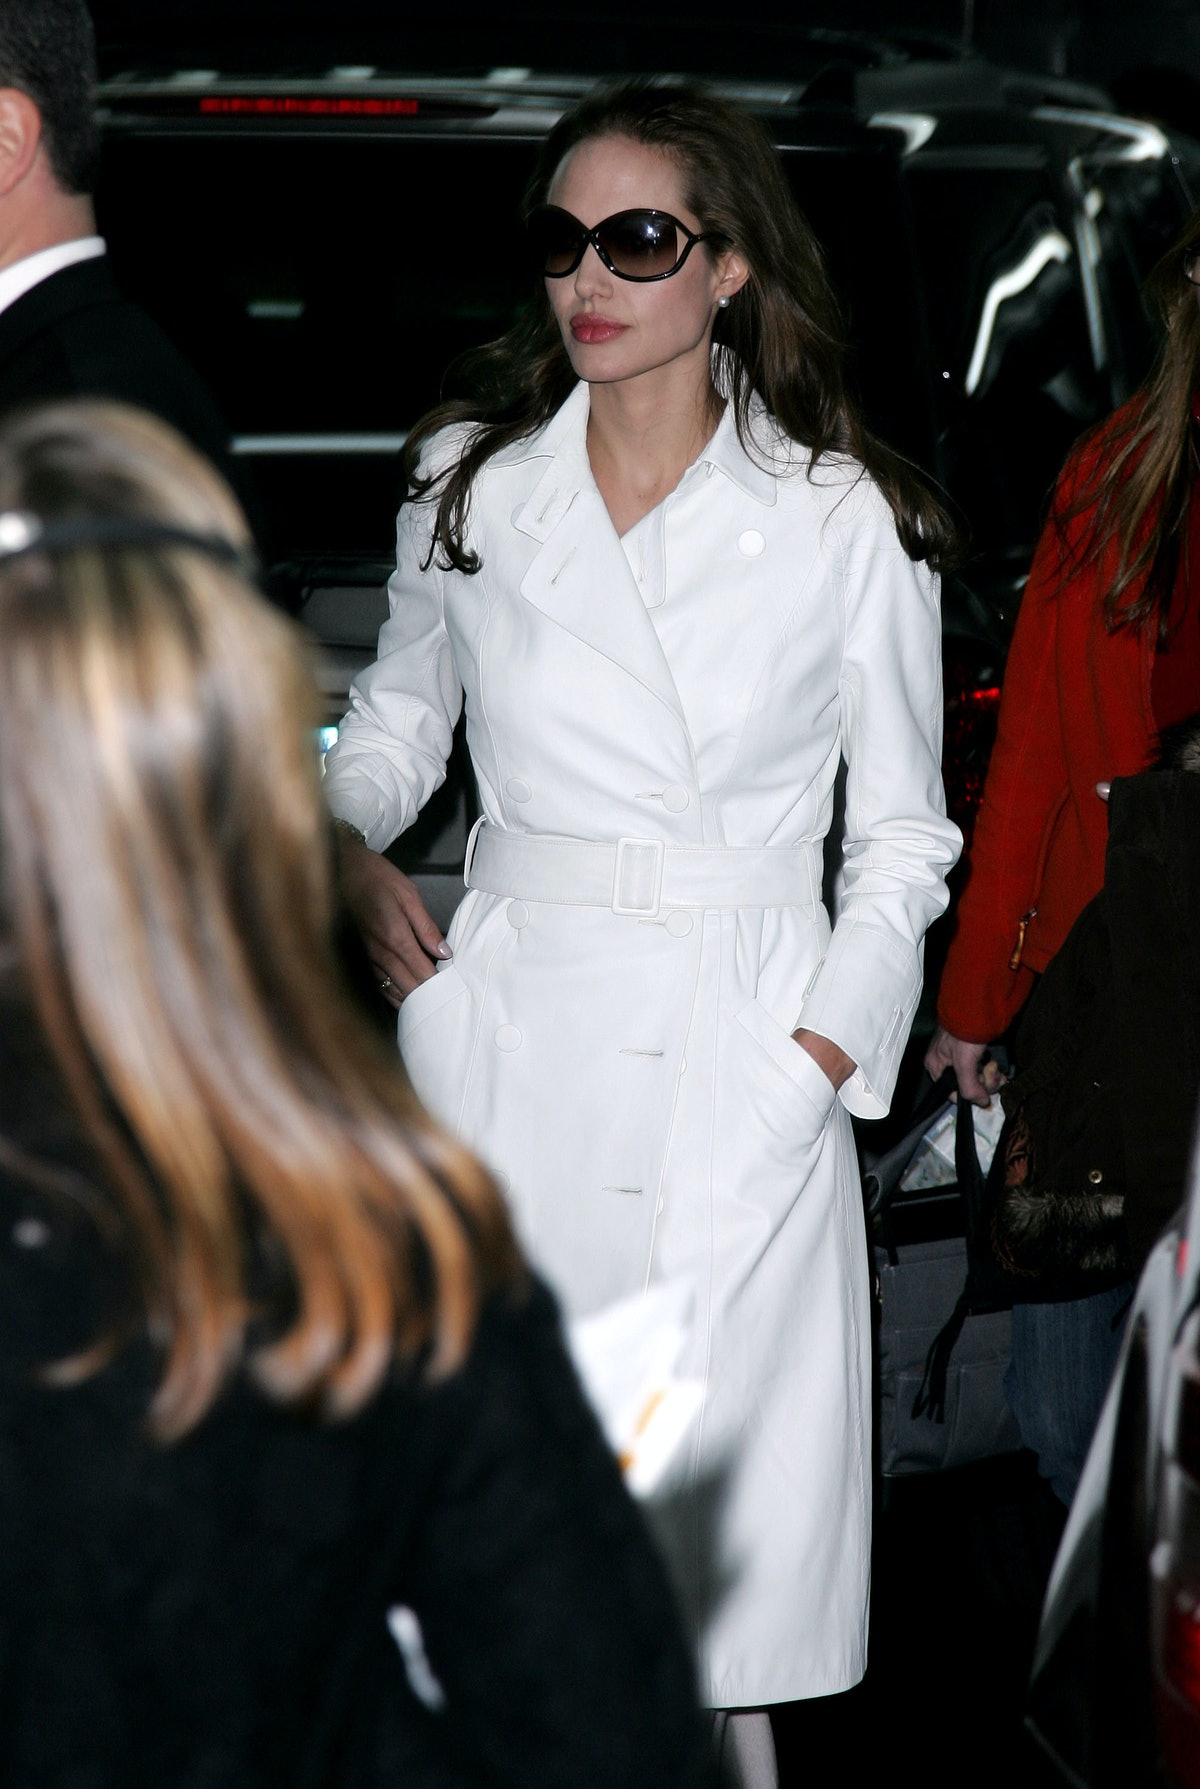 Angelina Jolie during Angelina Jolie Sighting In New York City - December 8, 2006 at Streets of Manh...